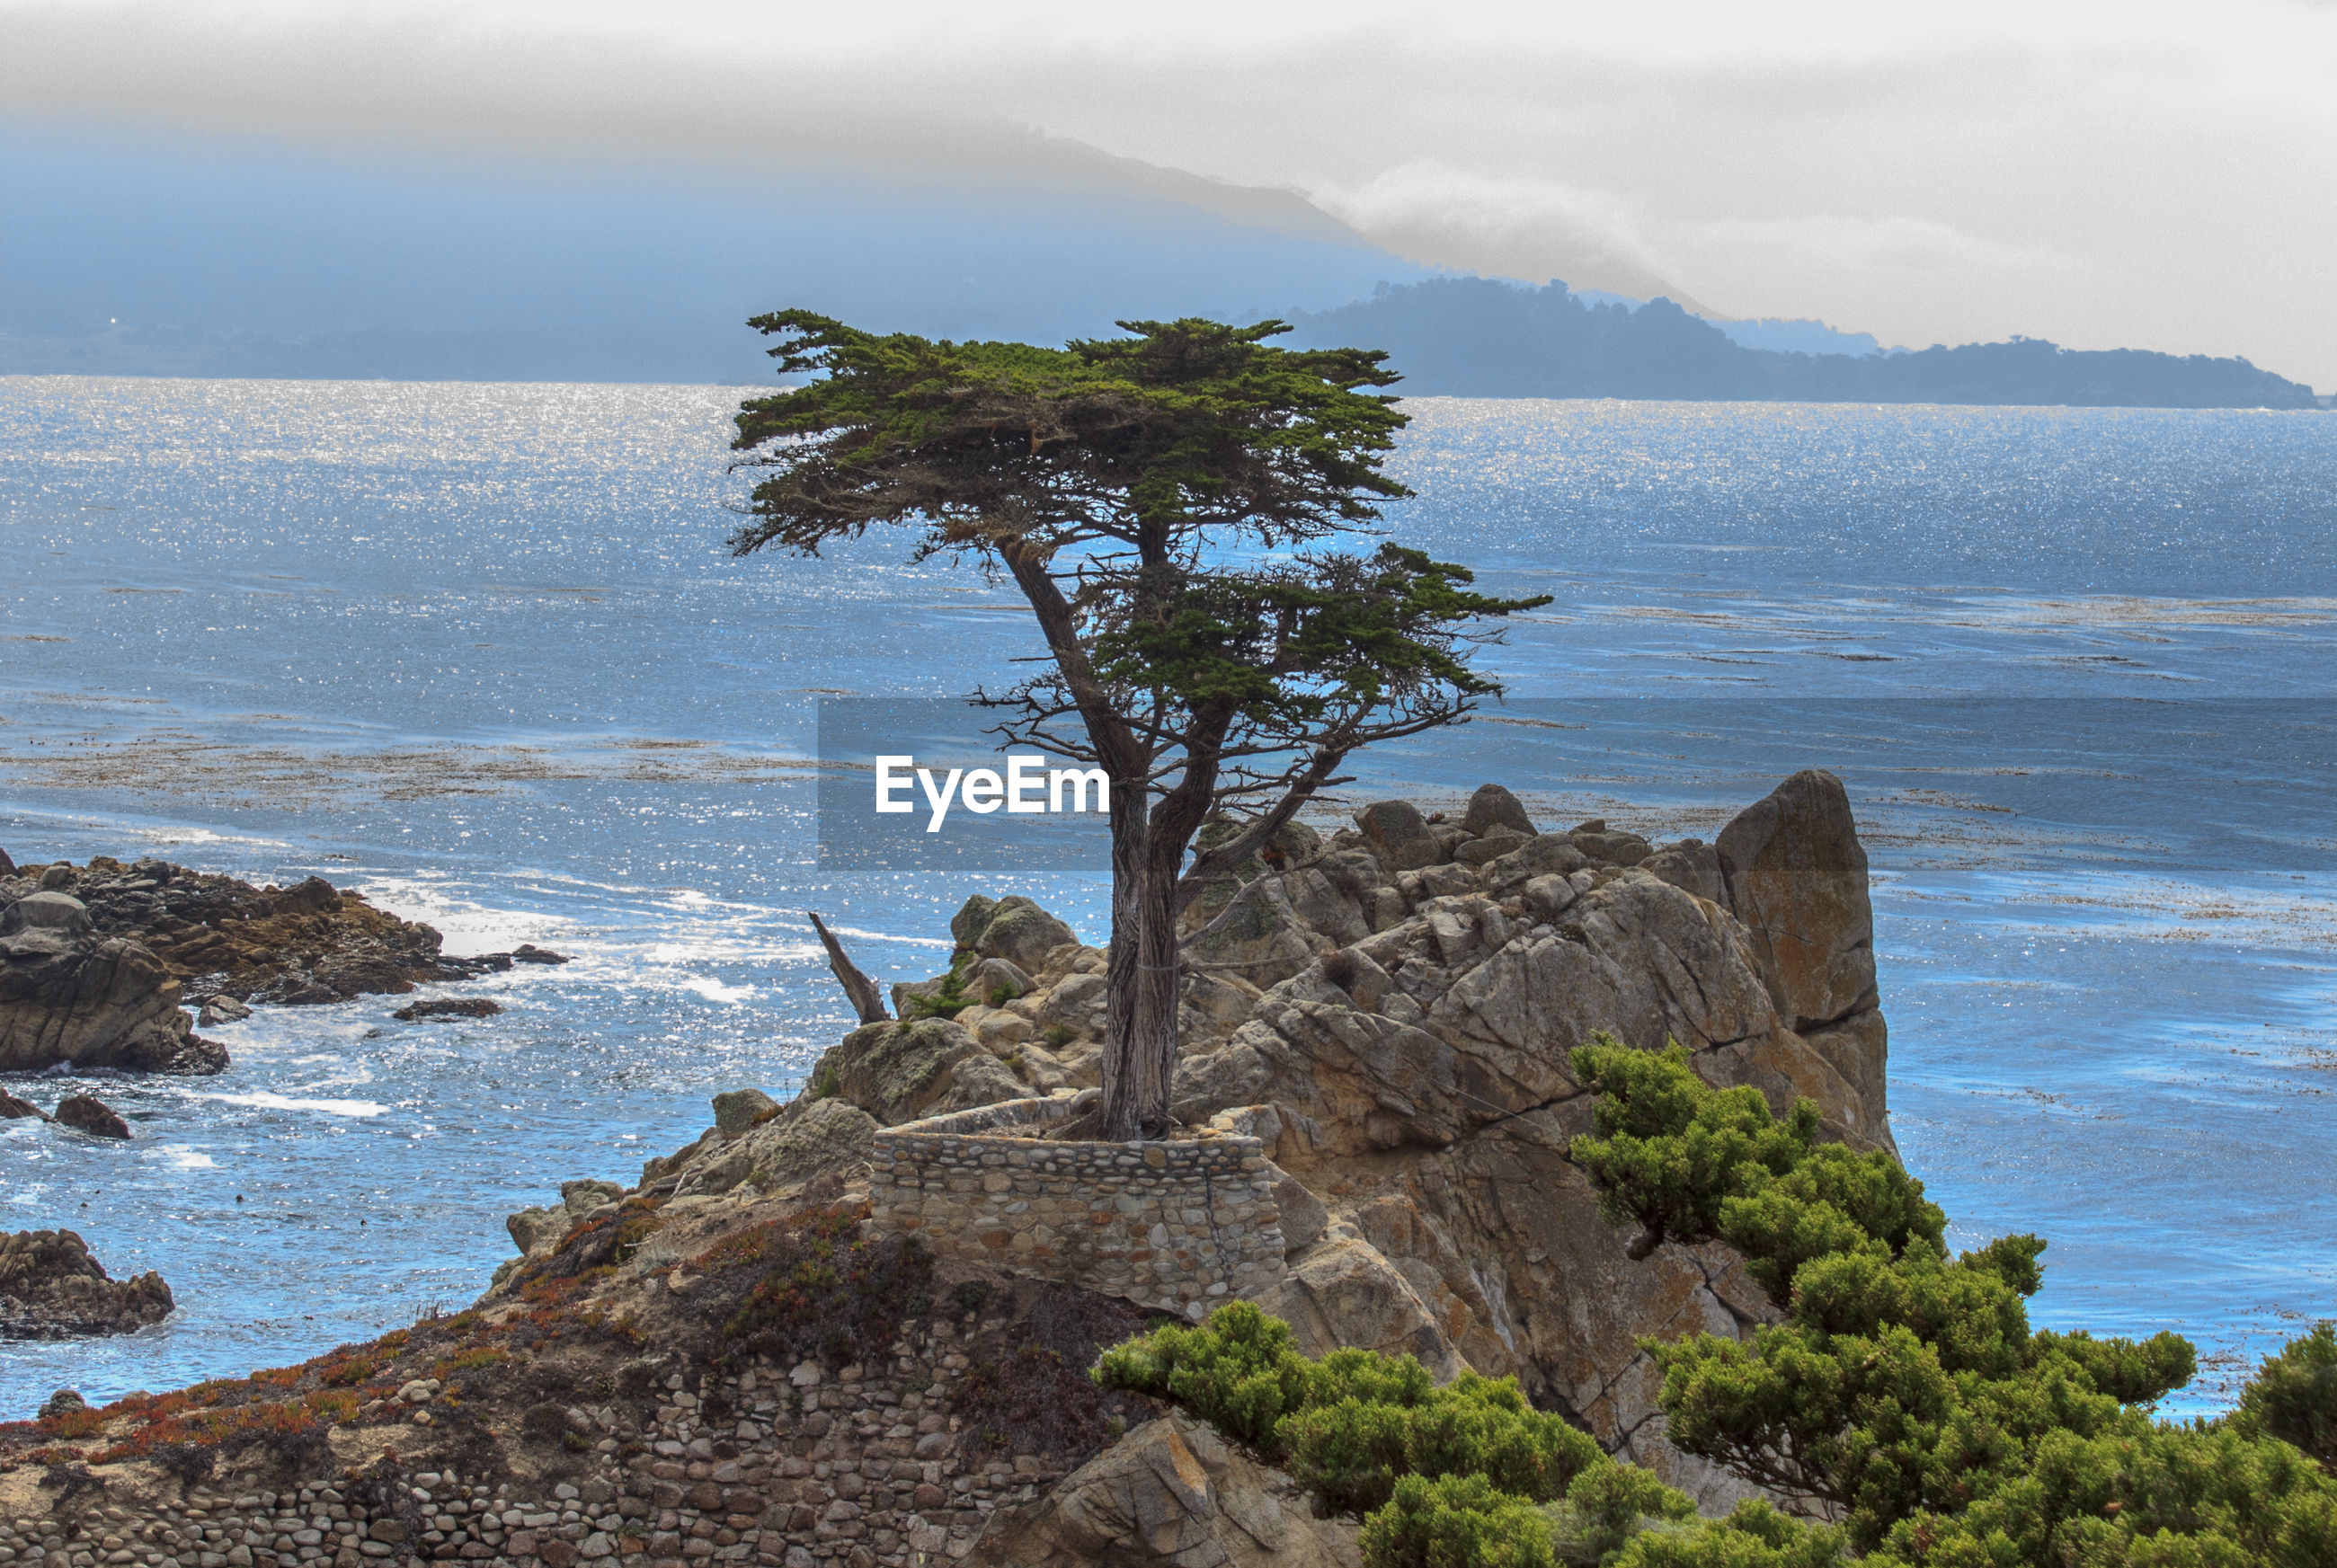 TREES ON CLIFF BY SEA AGAINST SKY